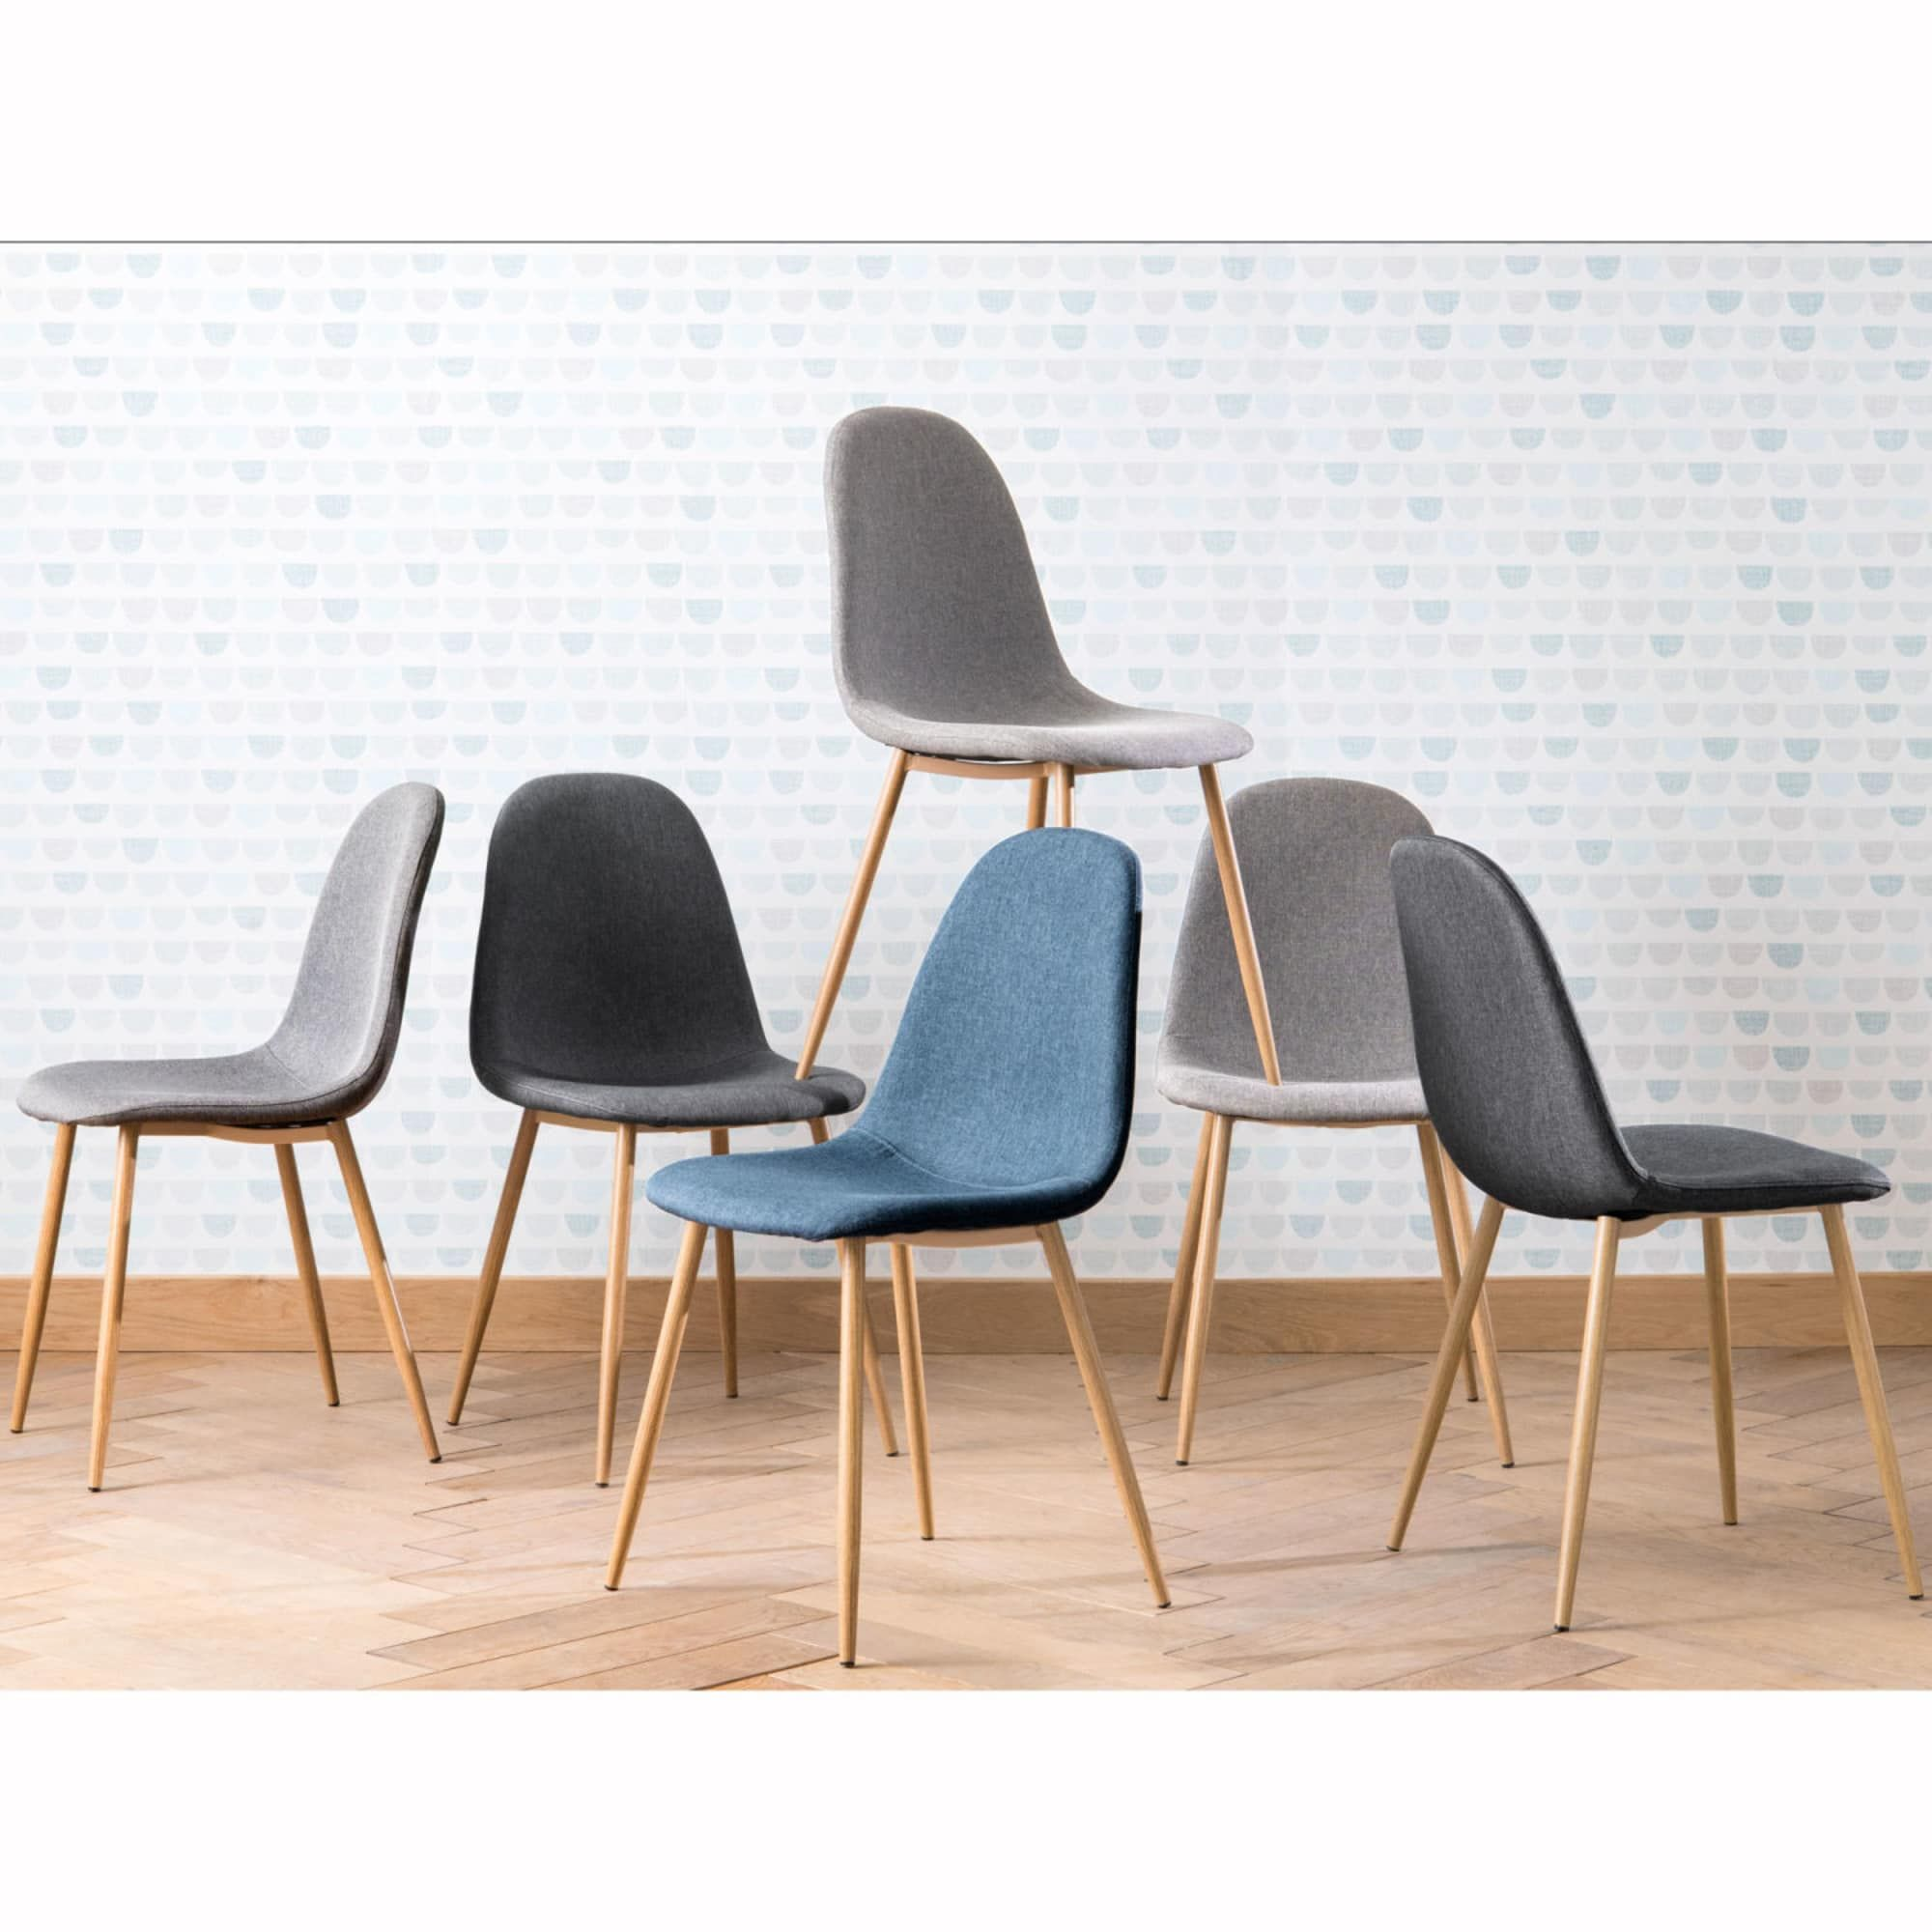 Grey Fabric Metal Chair Clyde Maisons Du Monde Scandinavian Chairs Scandinavian Dining Chairs White Leather Dining Chairs